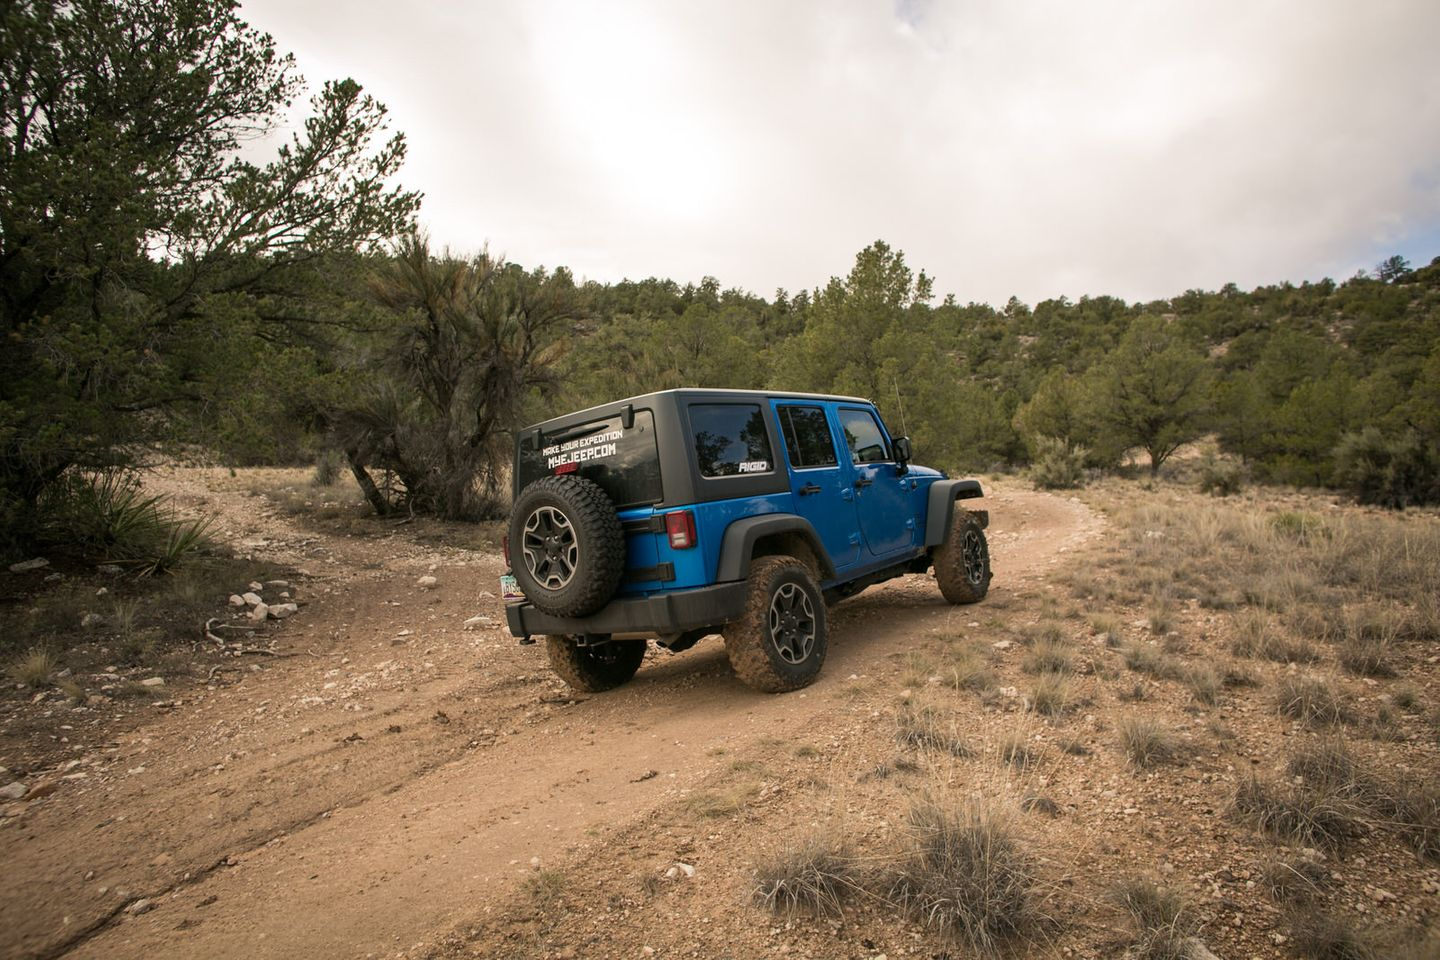 House Mountain Trail - Waypoint 10: Stay Right